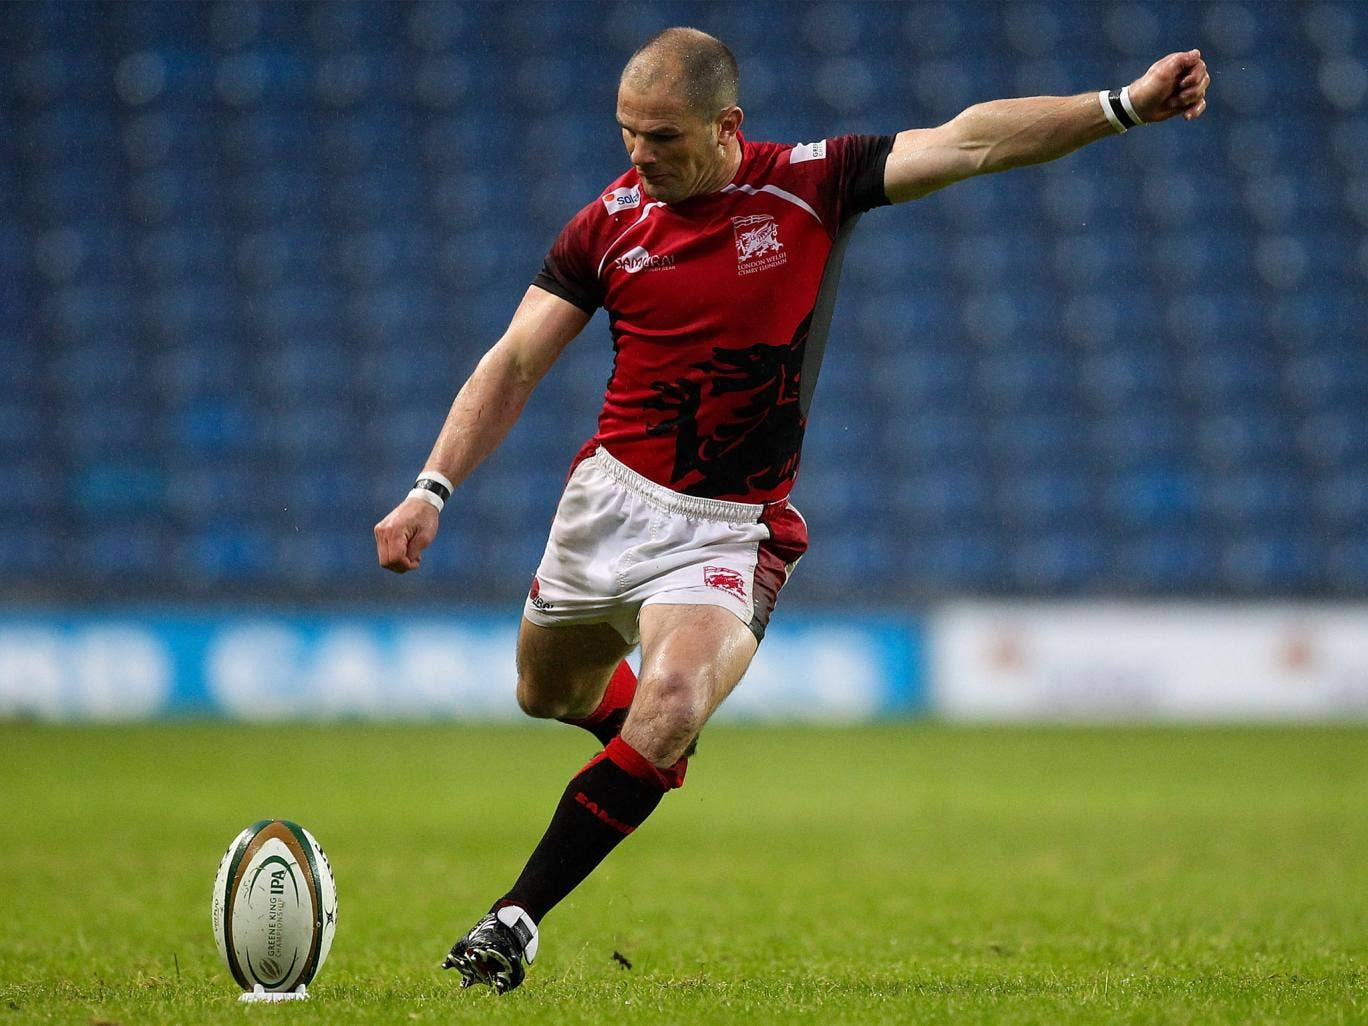 Gordon Ross converted all three tries and kicked two penalties for London Welsh